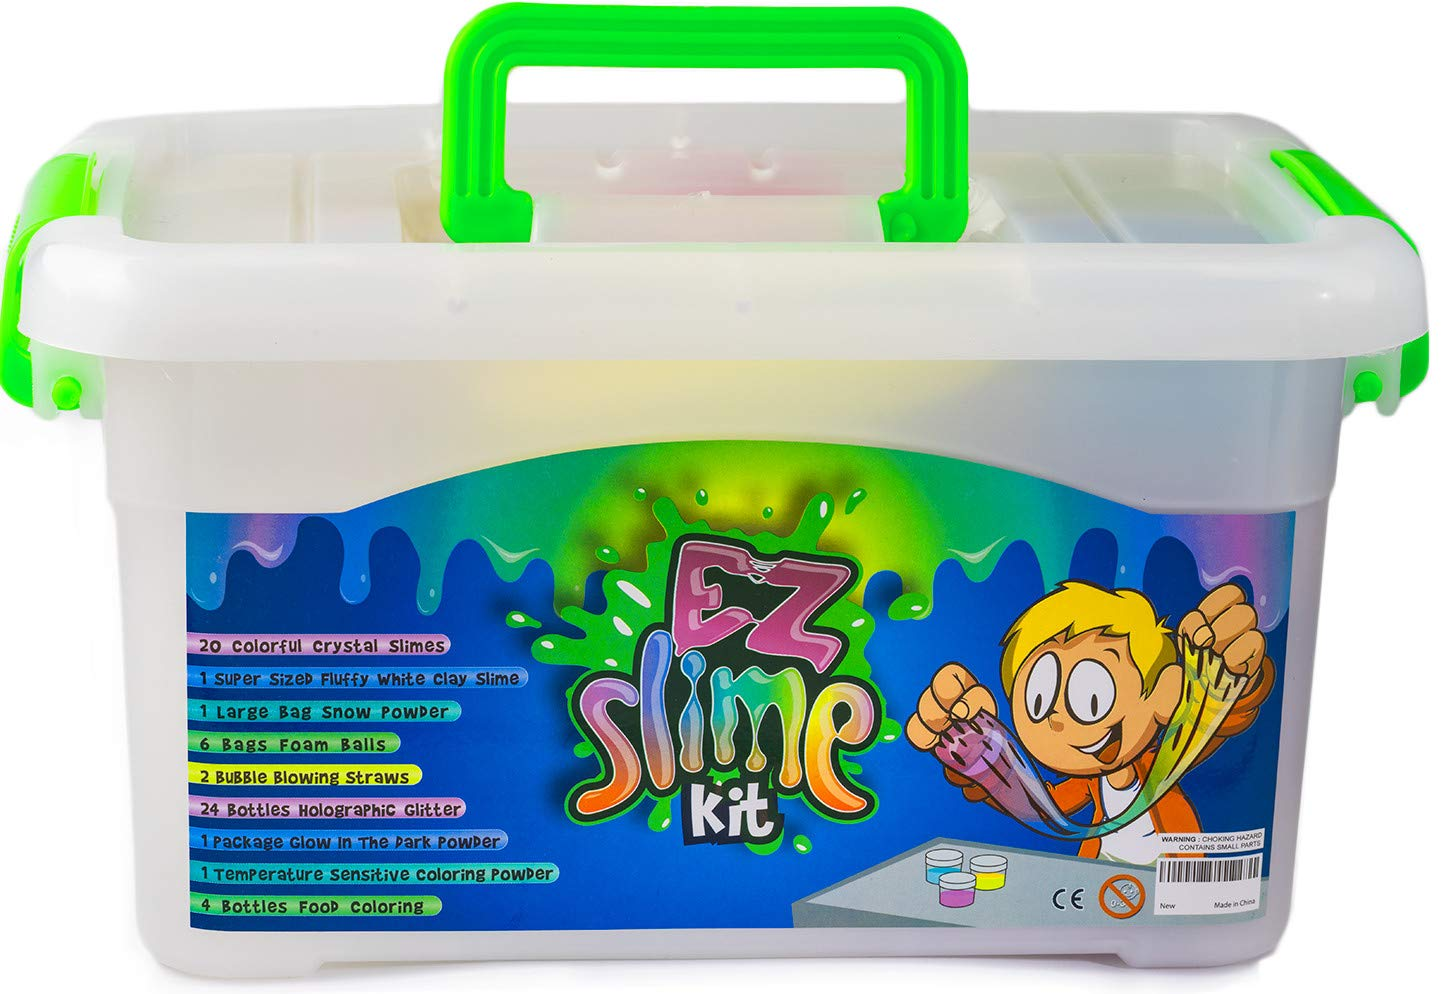 EZ Slime Kit- Boys Girls Everyone. Crystal Slime, Fluffy Clay Slime, Fake Snow, Glow Powder, Thermal Powder, Foam Beads, Glitter, Plus More. 60 Piece Kit. Over 3 Pounds by EZ Slime Kit (Image #1)